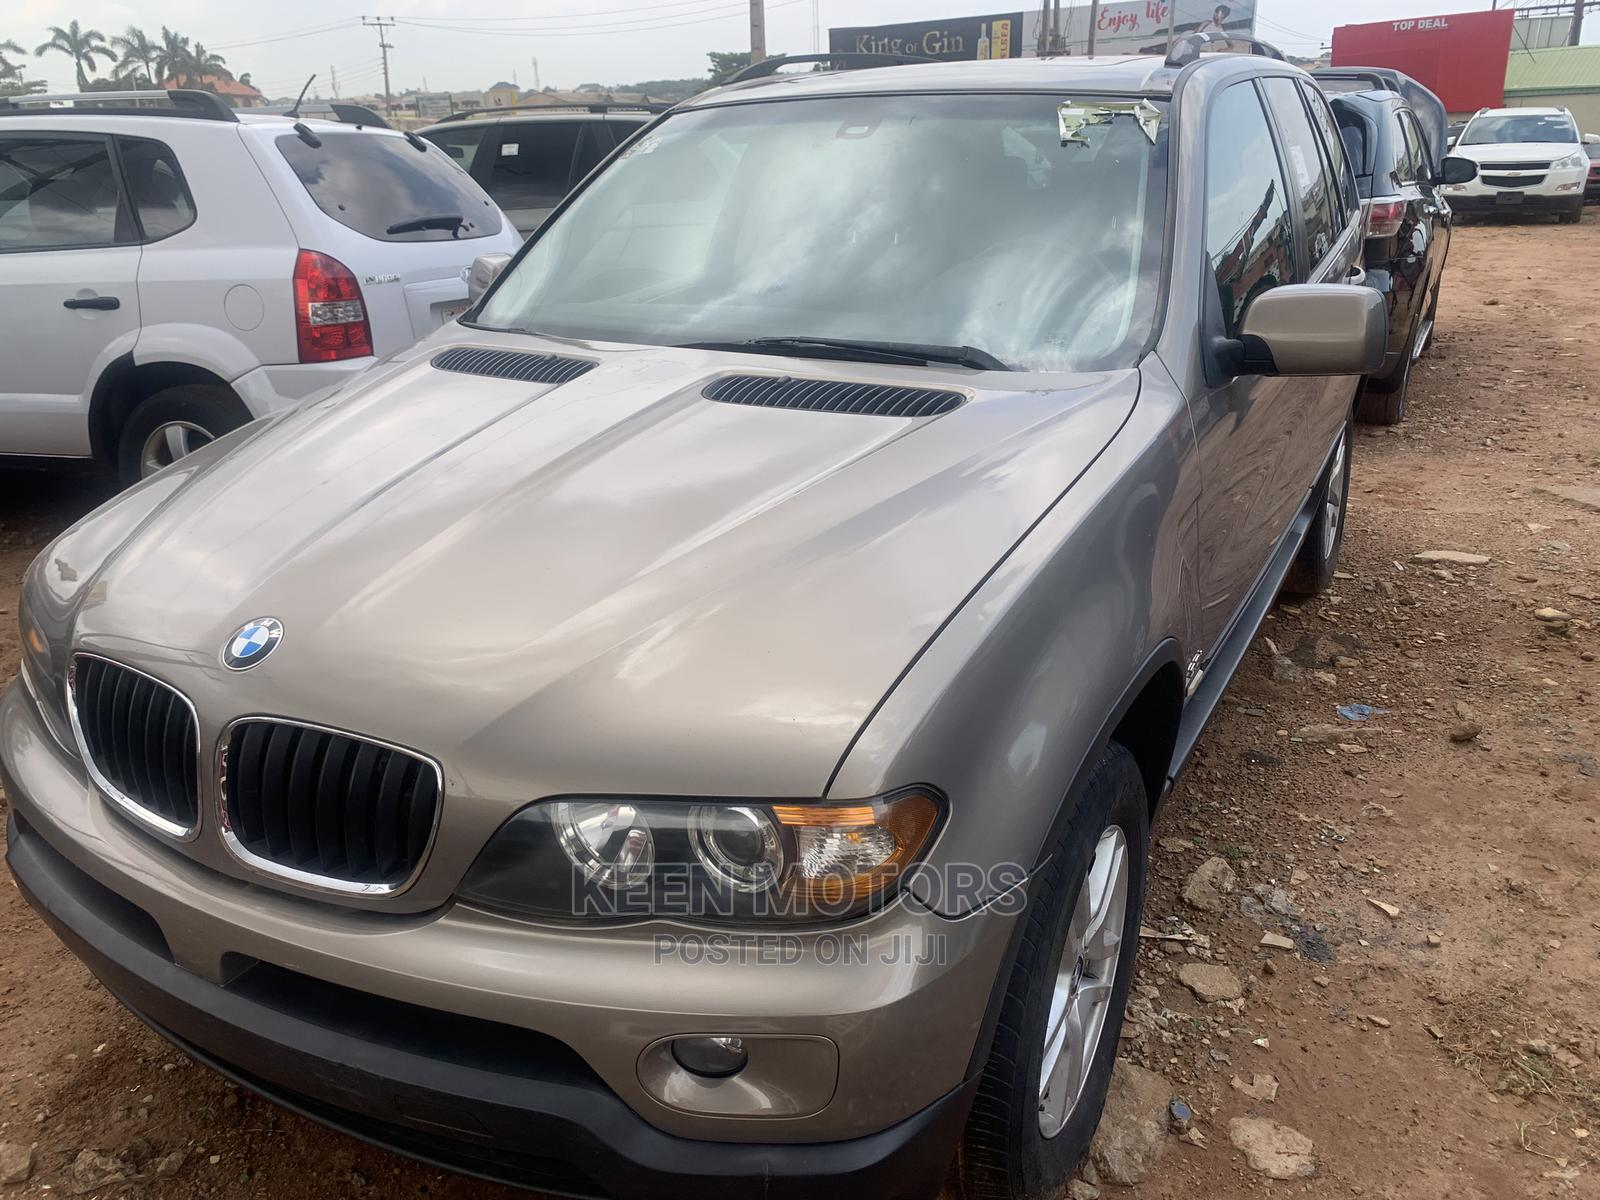 Archive: BMW X5 2006 3.0i Brown